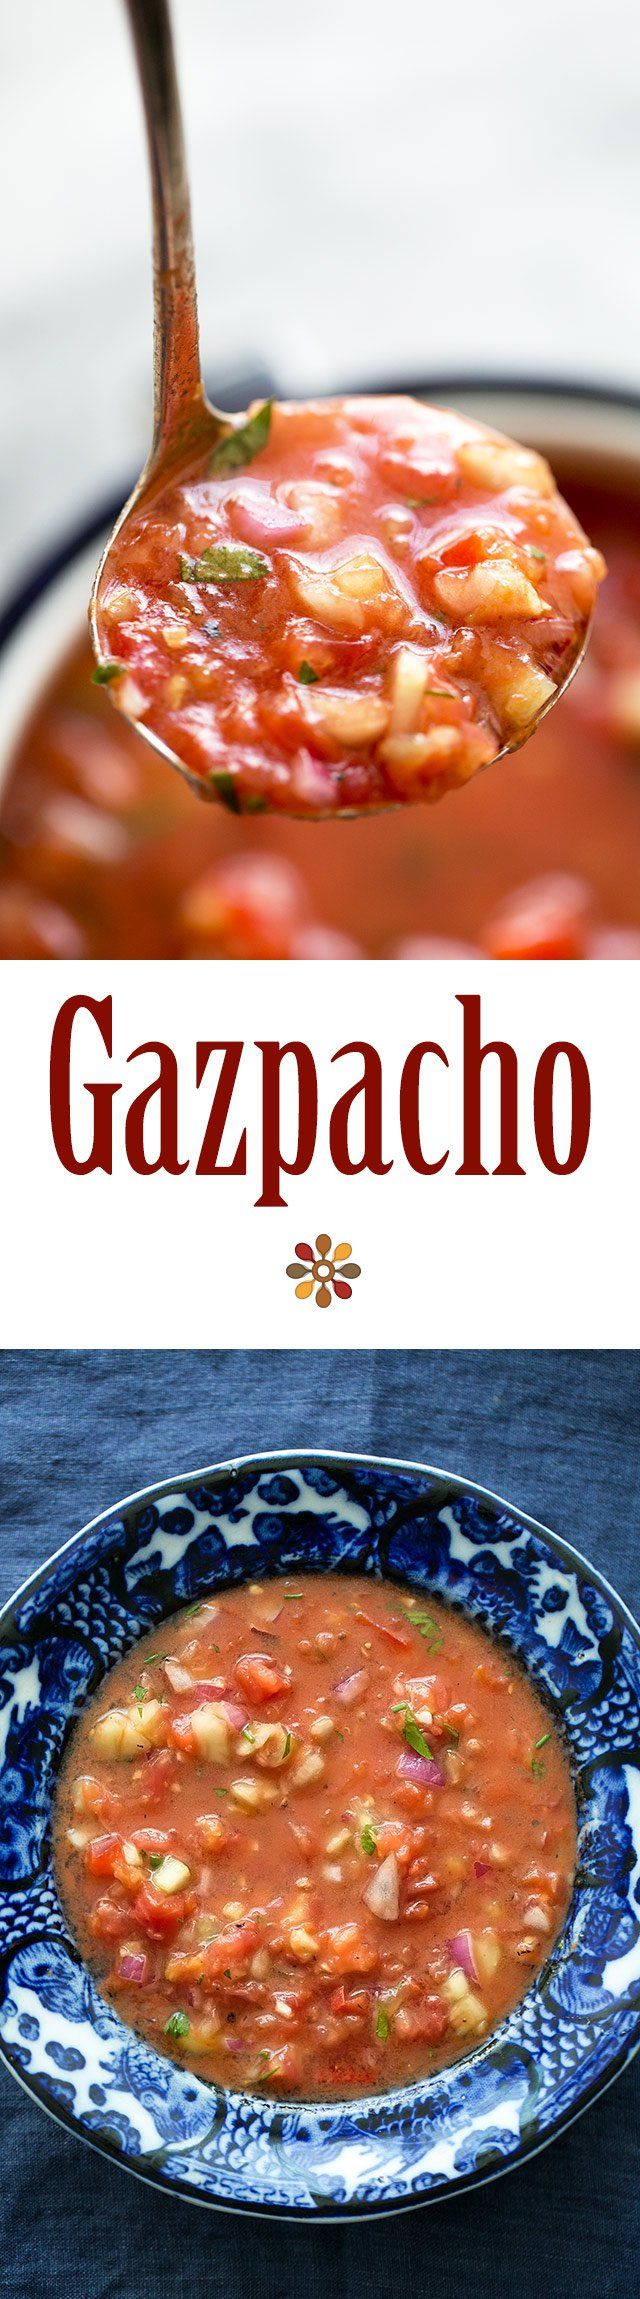 Gazpacho ~ California version of the classic Spanish gazpacho recipe ...